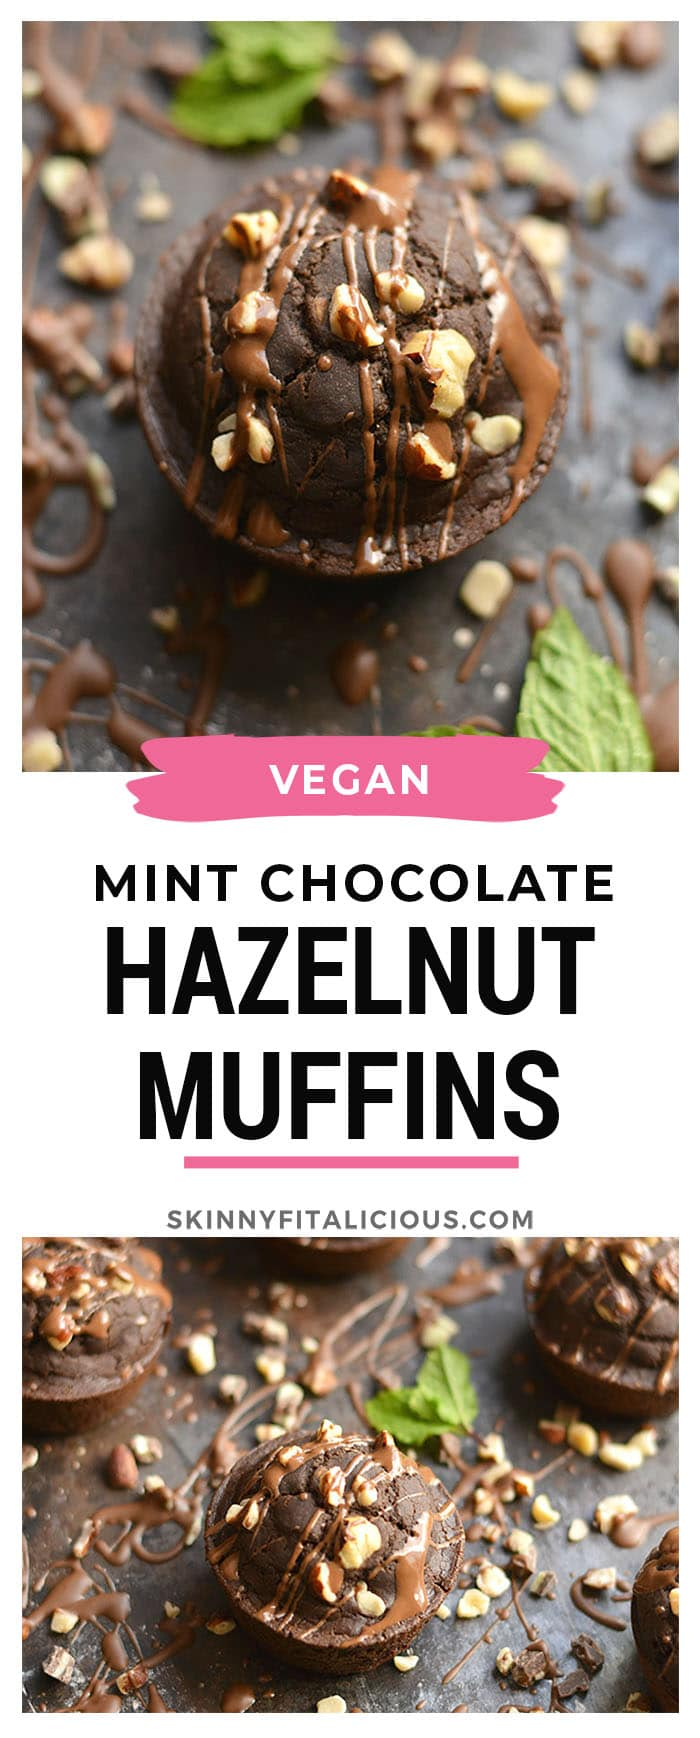 Mint Chocolate Hazelnut Muffins! Bursting with rich dark cocoa, mint flavor & crunchy hazelnuts, these vegan muffinsmakemouthwatering minidesserts. A healthy way to satisfy a sweet tooth! Gluten Free + Vegan + Low Calorie!